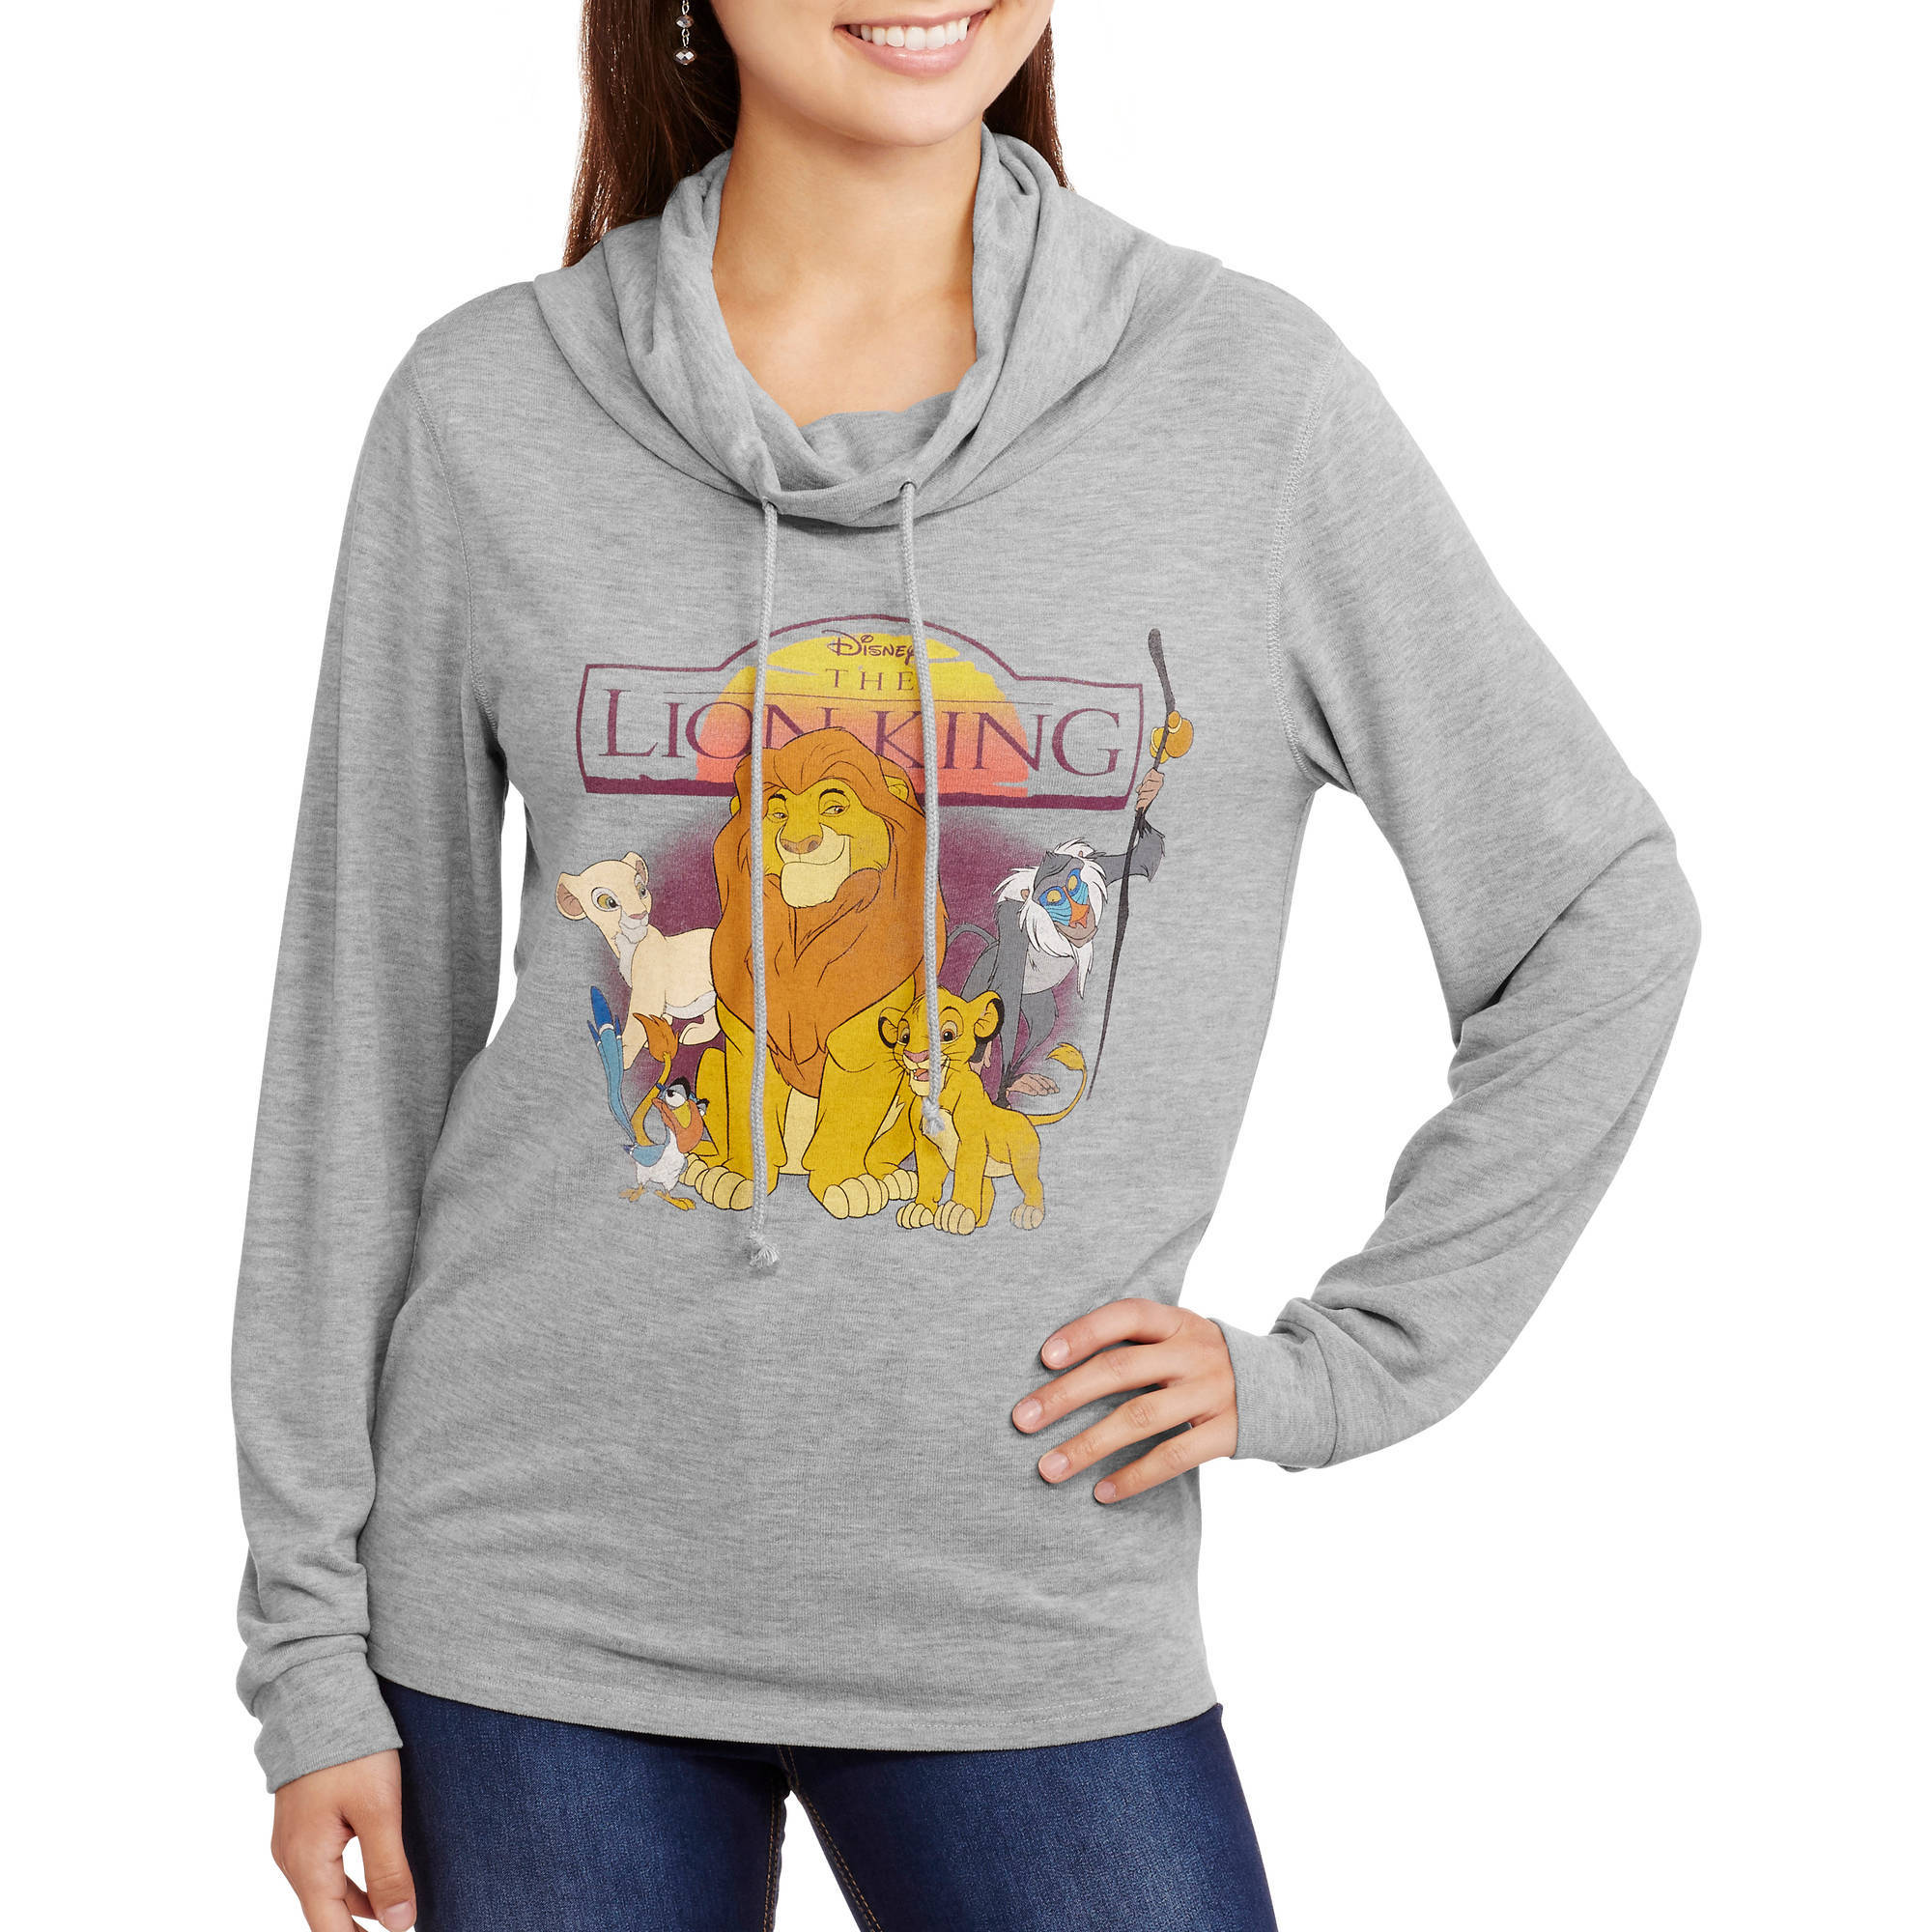 Juniors' Graphic Cowl Neck Pullover Sweatshirt